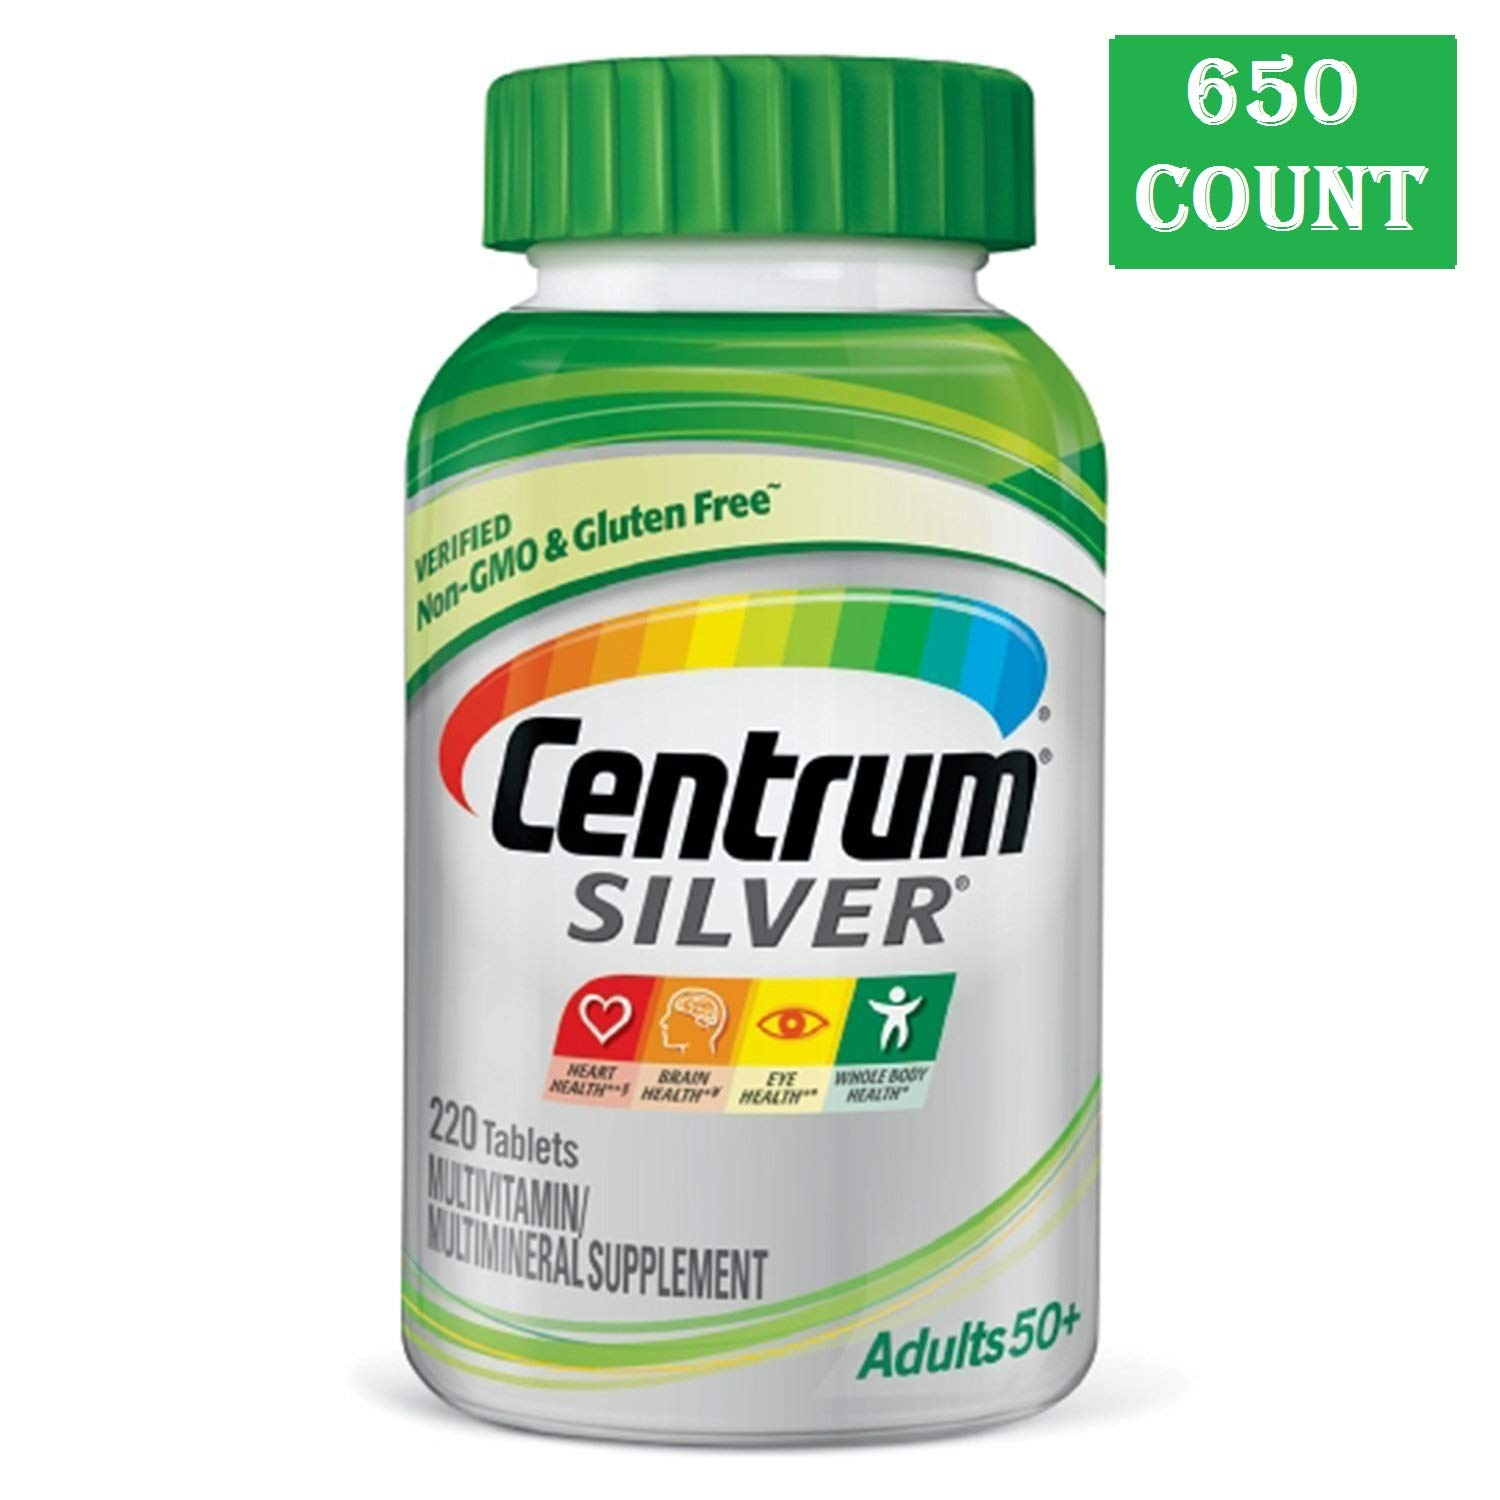 Centrum Silver Adult (650 Count) Multivitamin/Multimineral Supplement Tablet, Vitamin D3, Age 50+ (650 Count)